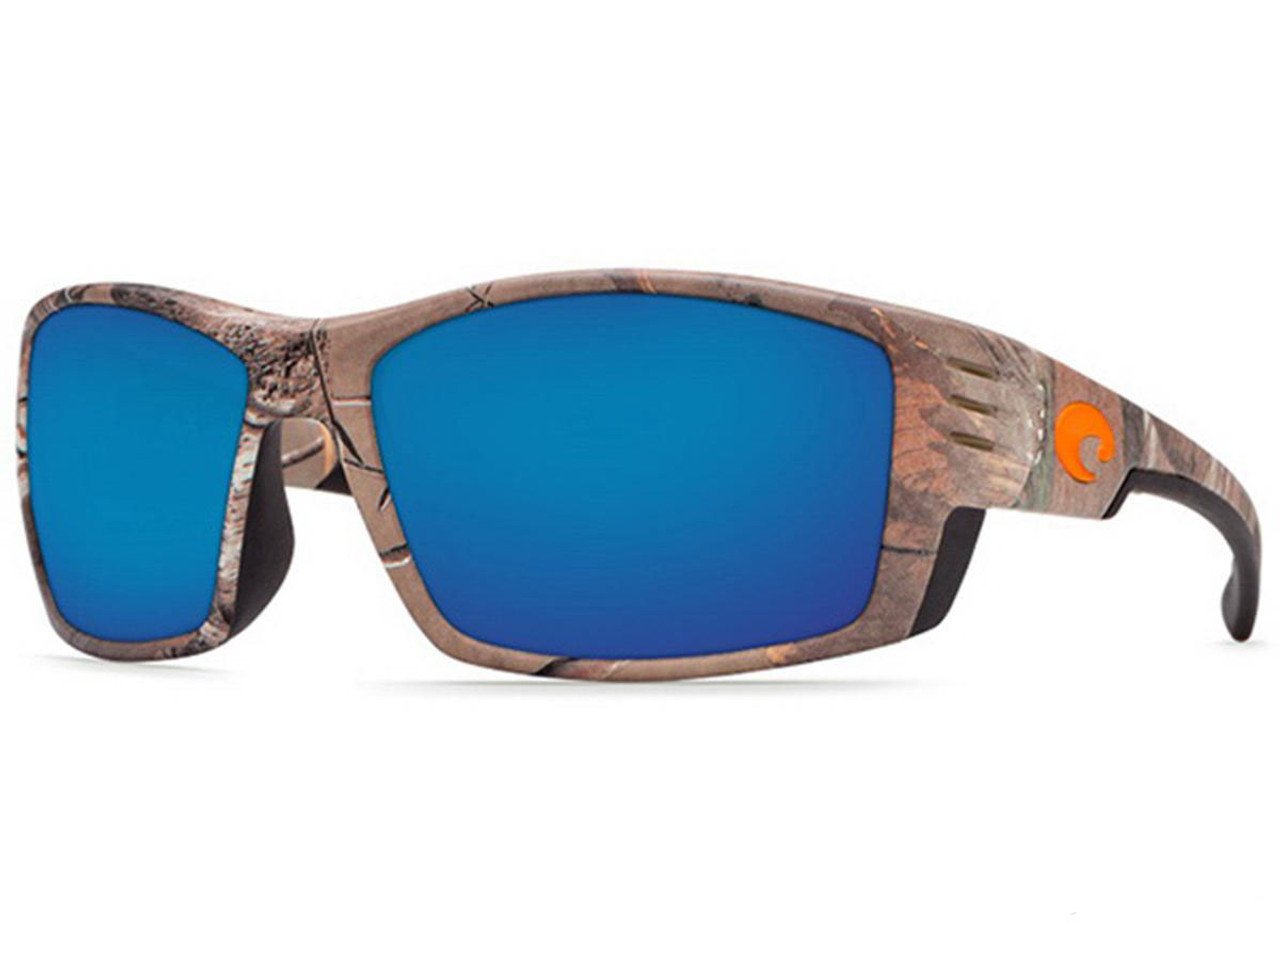 b64a7fba77f Costa Del Mar - Cortez Polarized Sunglasses (Color  Realtree XTRA Camo    580p Blue